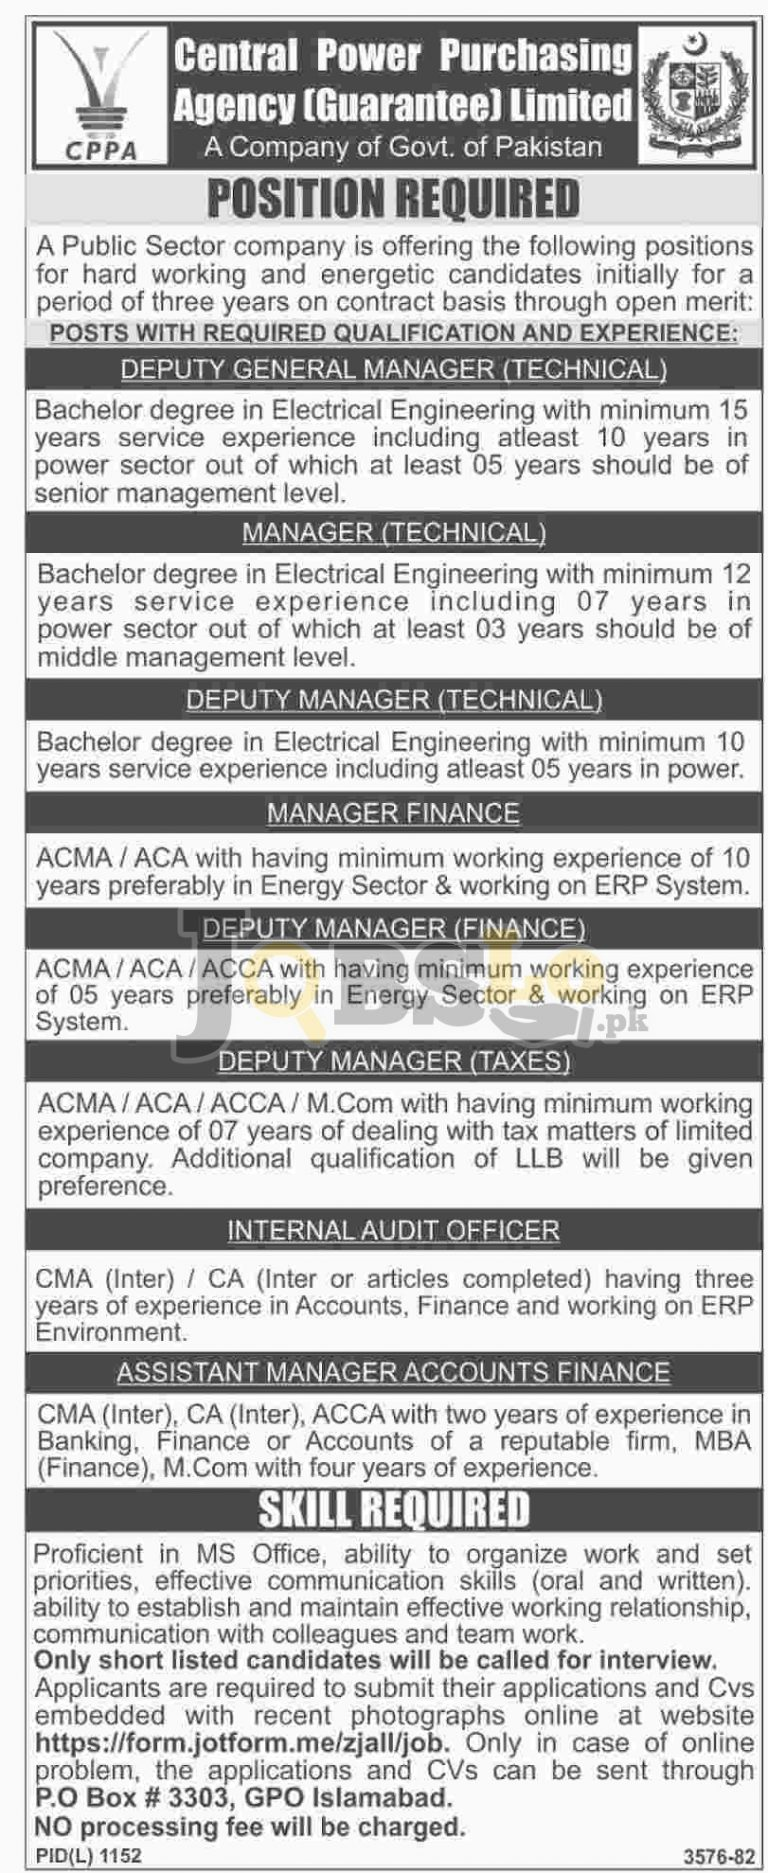 Central Power Purchasing Agency Islamabad Jobs 2016 Current Vacancies